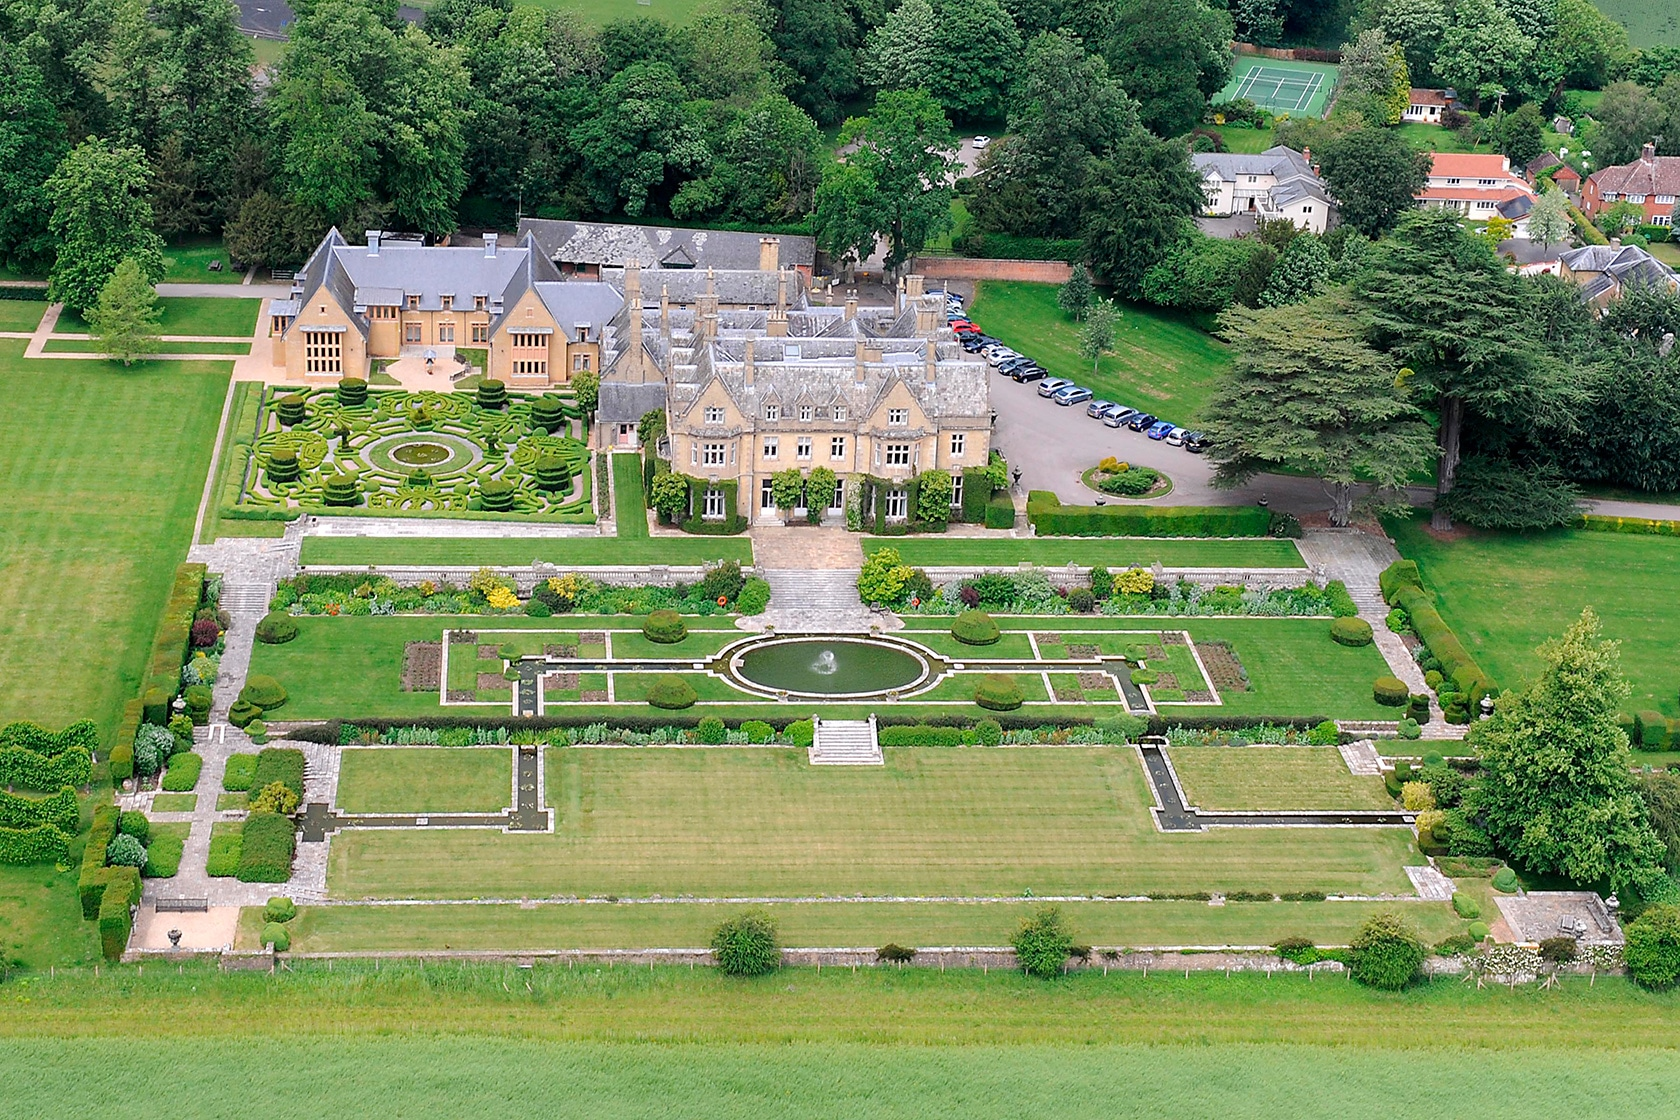 Amport House aerial view